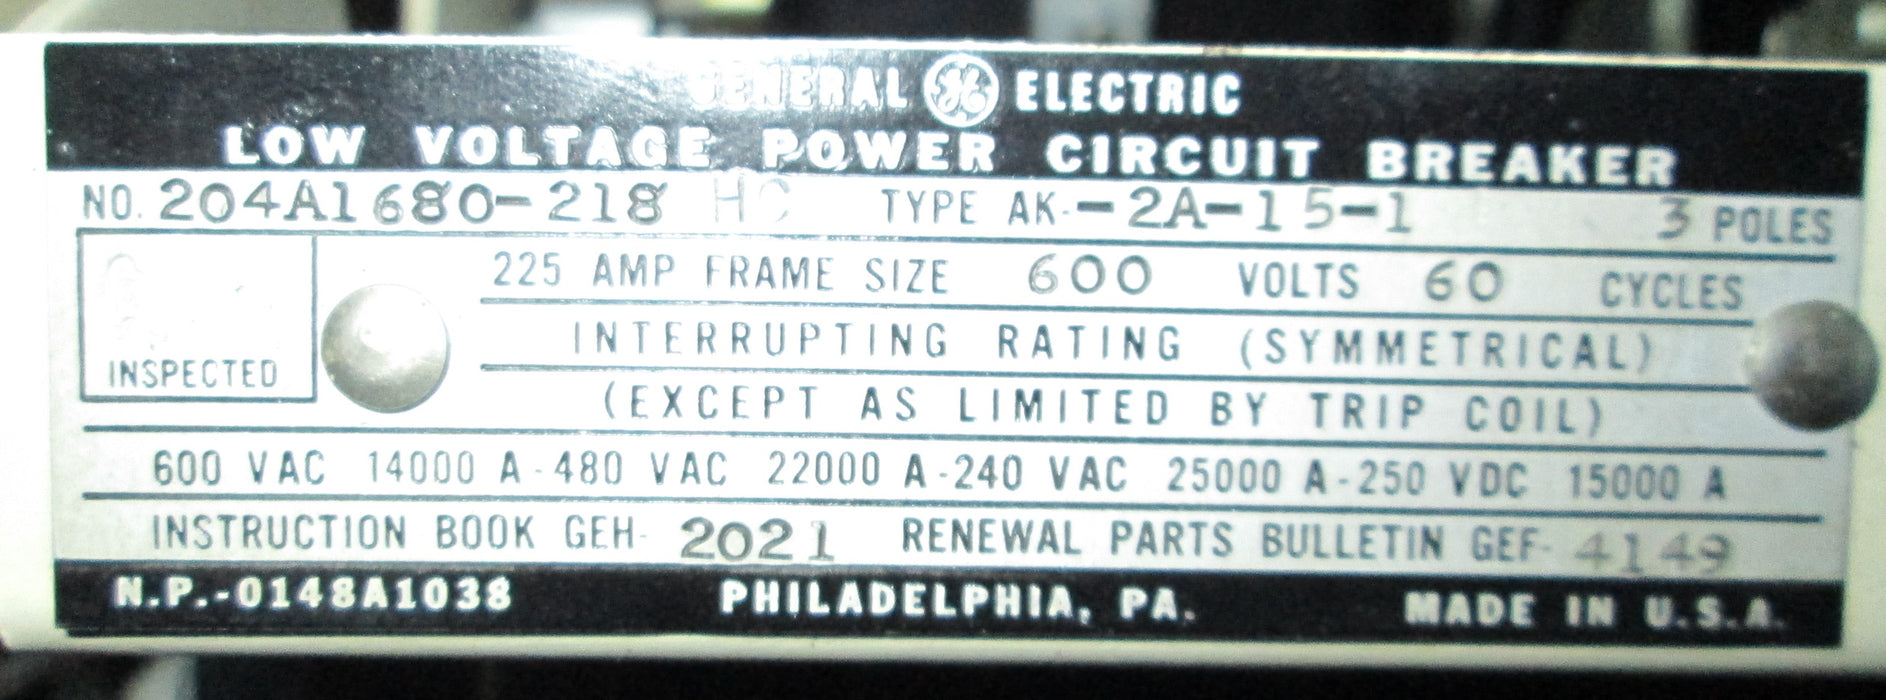 AK-2A-15-1 - General Electric Low Voltage Breaker